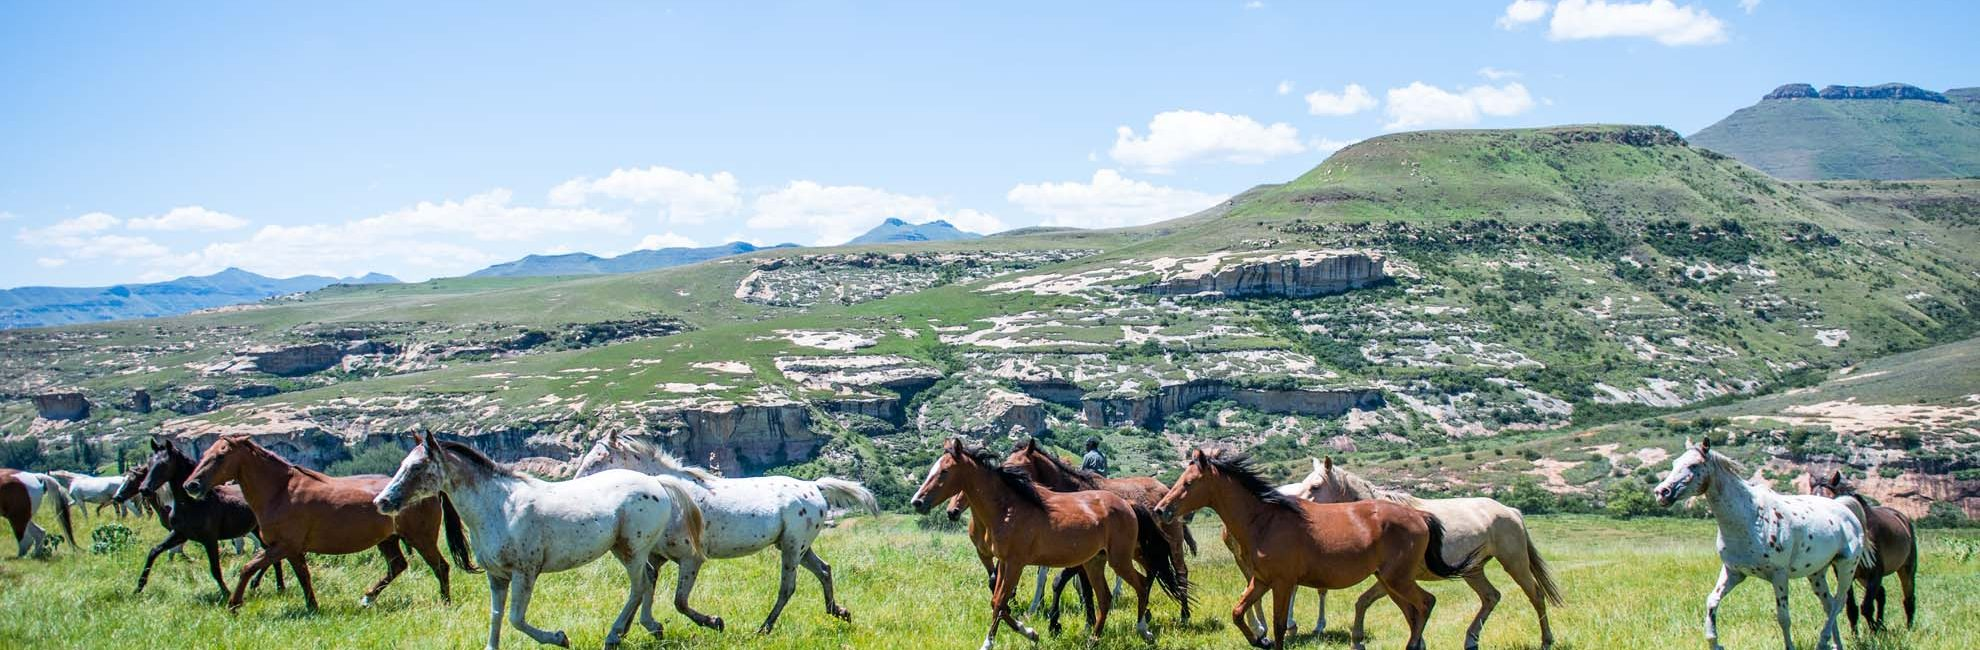 Horse riding per person - R230 for a 1-hour ride or R375 for 2 hours, clay pigeon shooting - R150 for 5 shots, archery - R50 for 5 shots